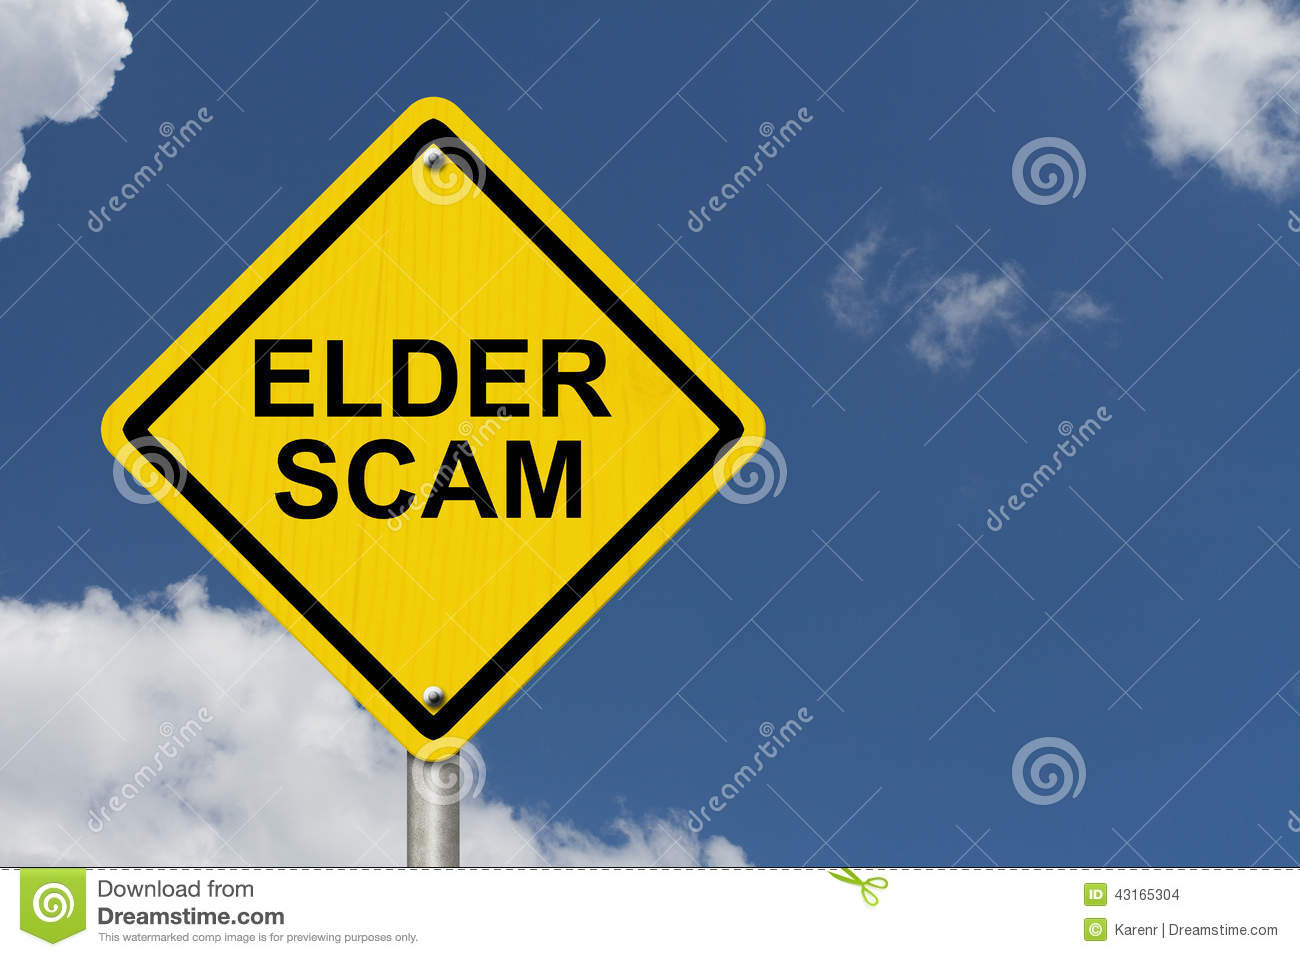 fraud early warning signs of fraud essay While many instances of fraud go undetected, learning how to spot the warning signs early on may help save you time and money in the long run fraud is a broad term that refers to a variety of offenses involving dishonesty or fraudulent acts.